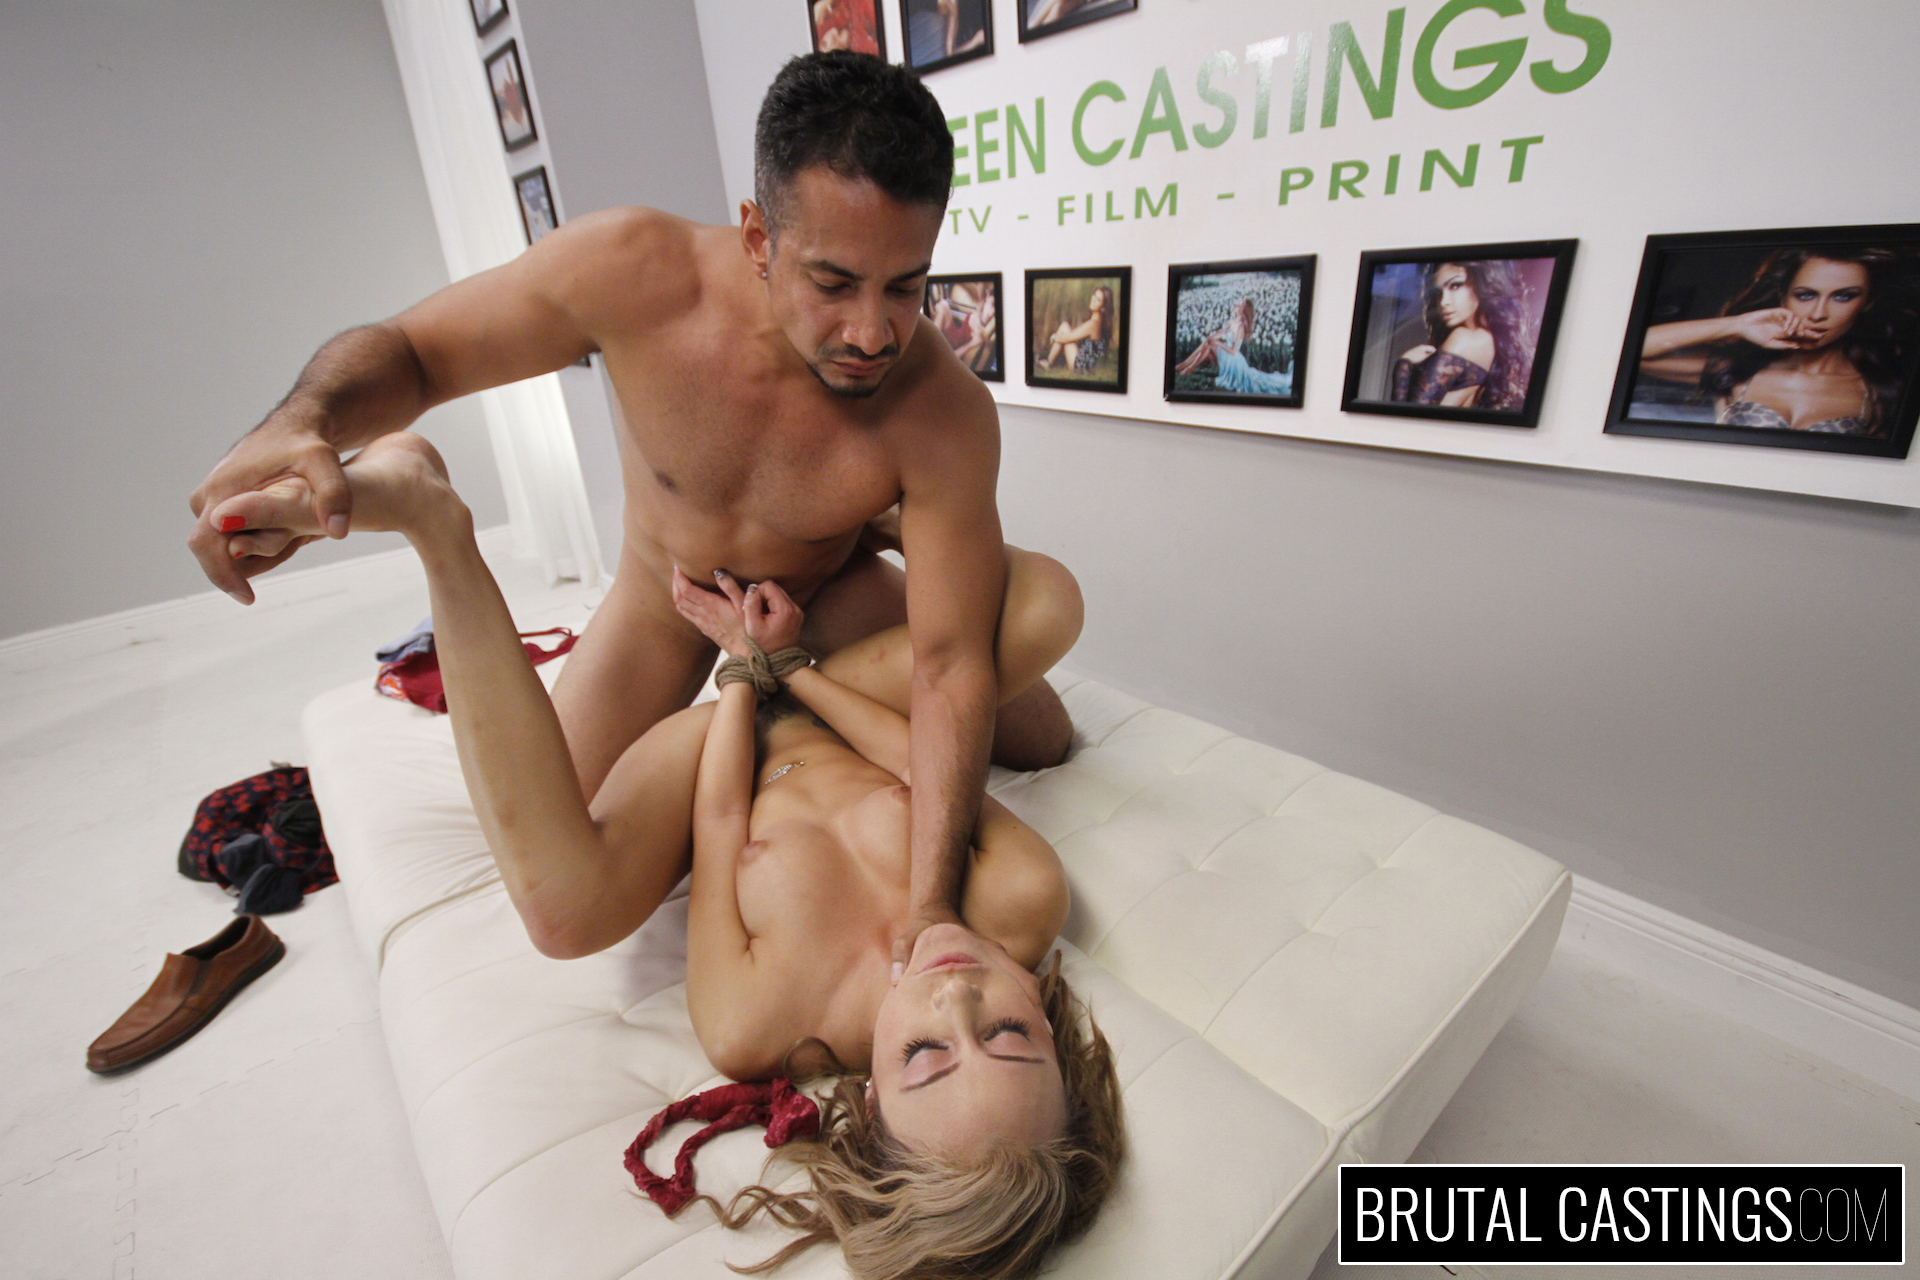 April angel brutal porn agree